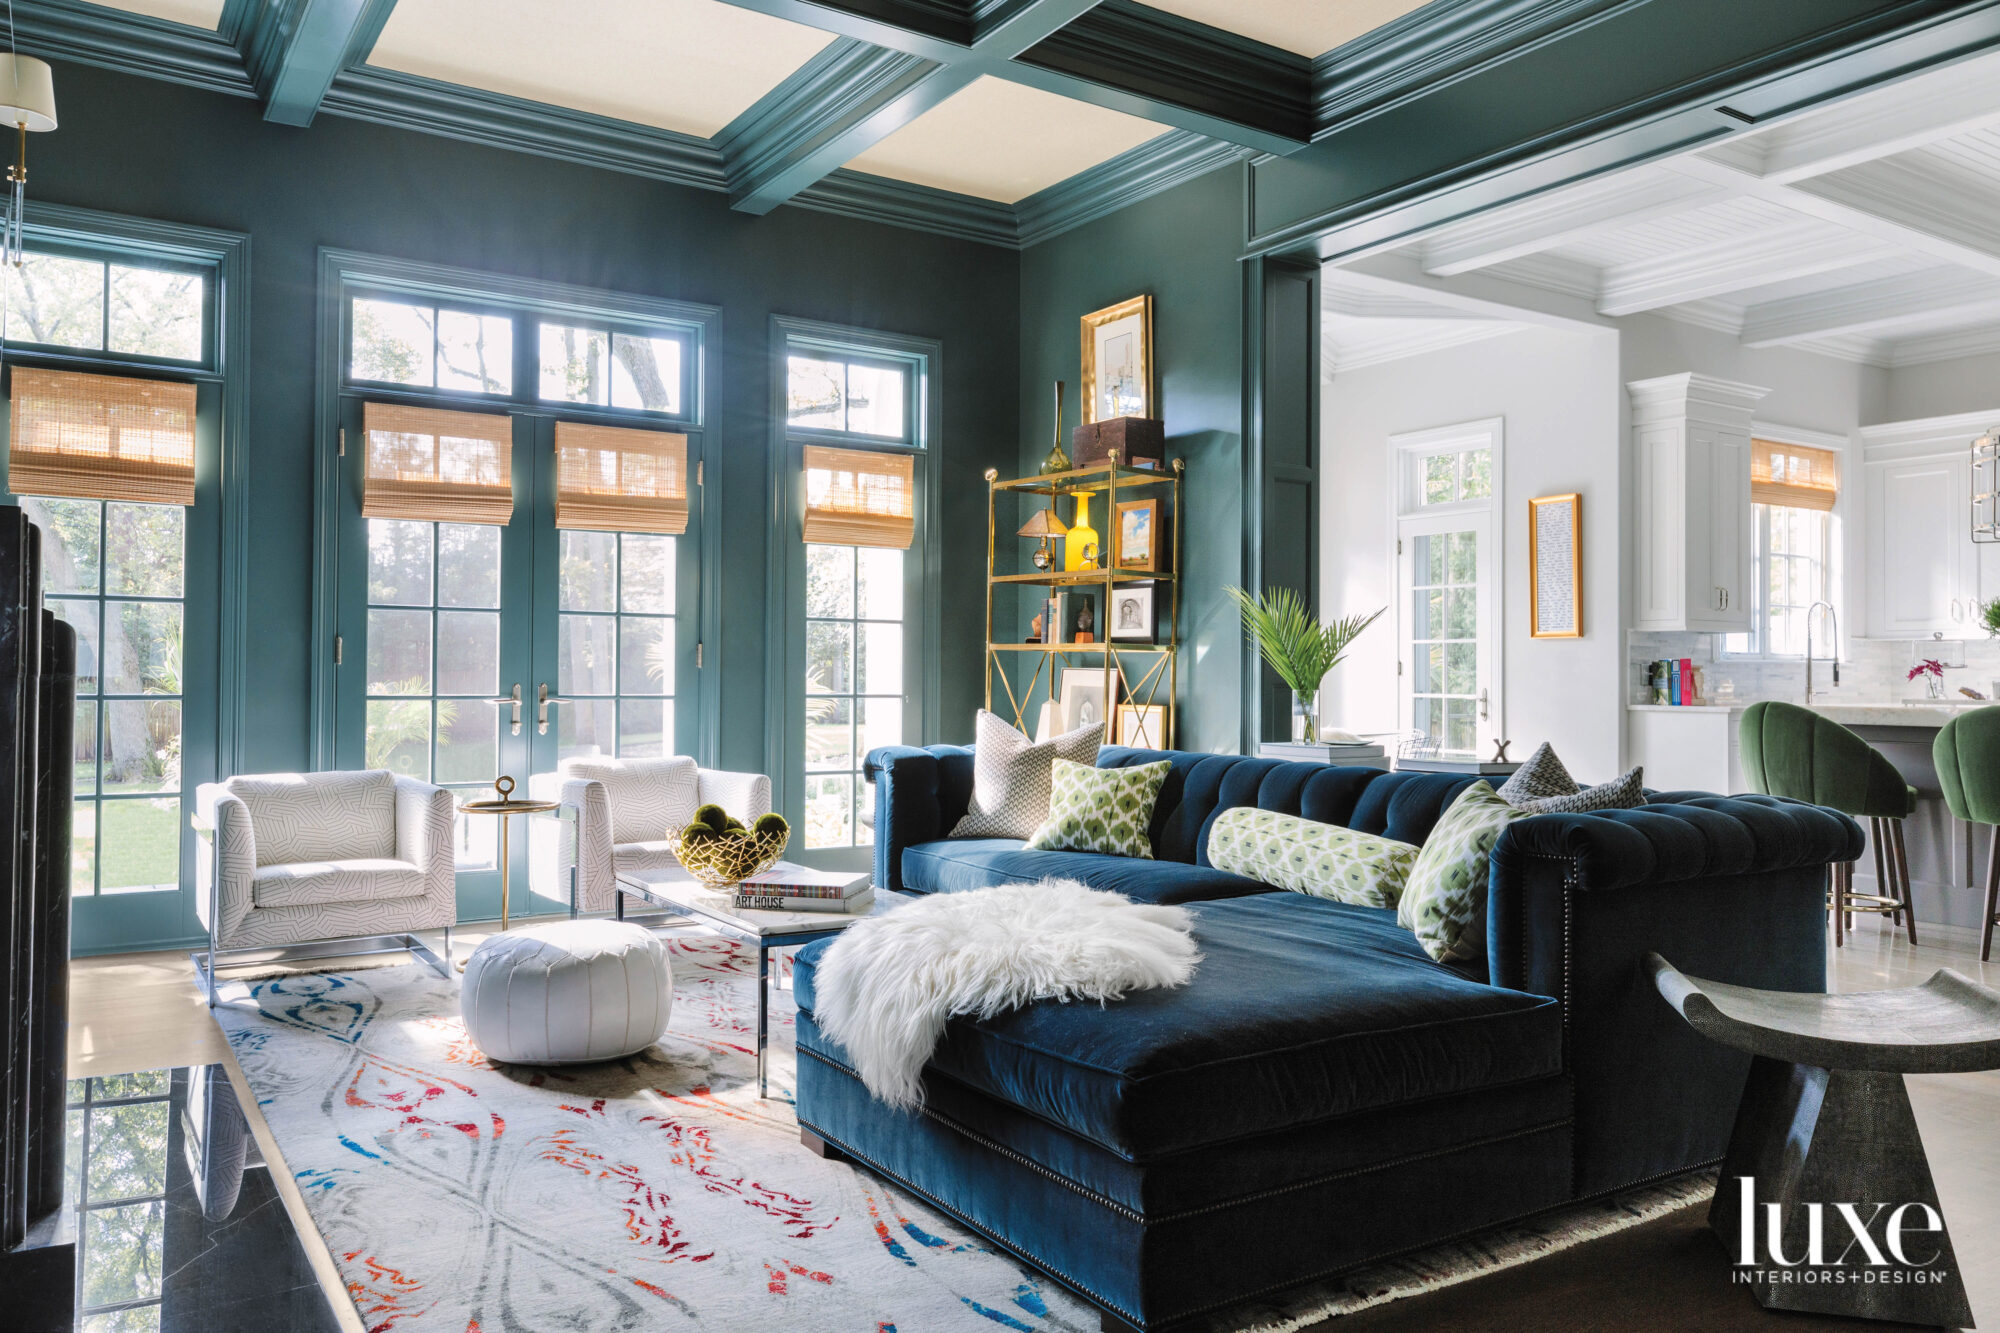 The family room has a a dark teal sectional. The walls and the ceiling beams are painted green.